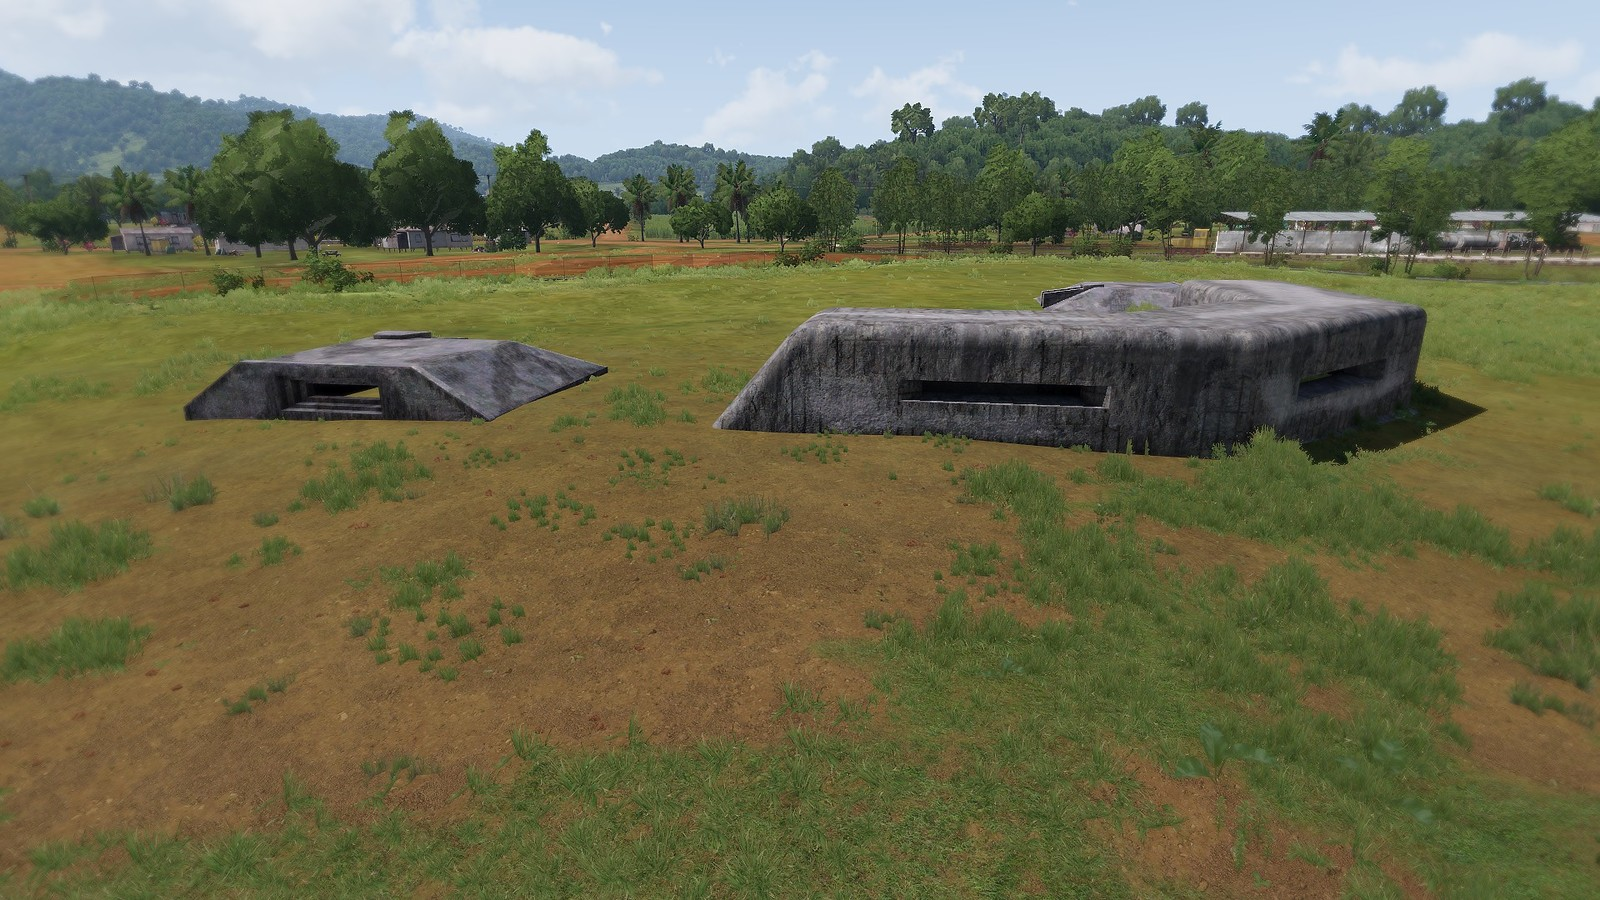 C-Shaped bunker with adjacent submerged Bunker